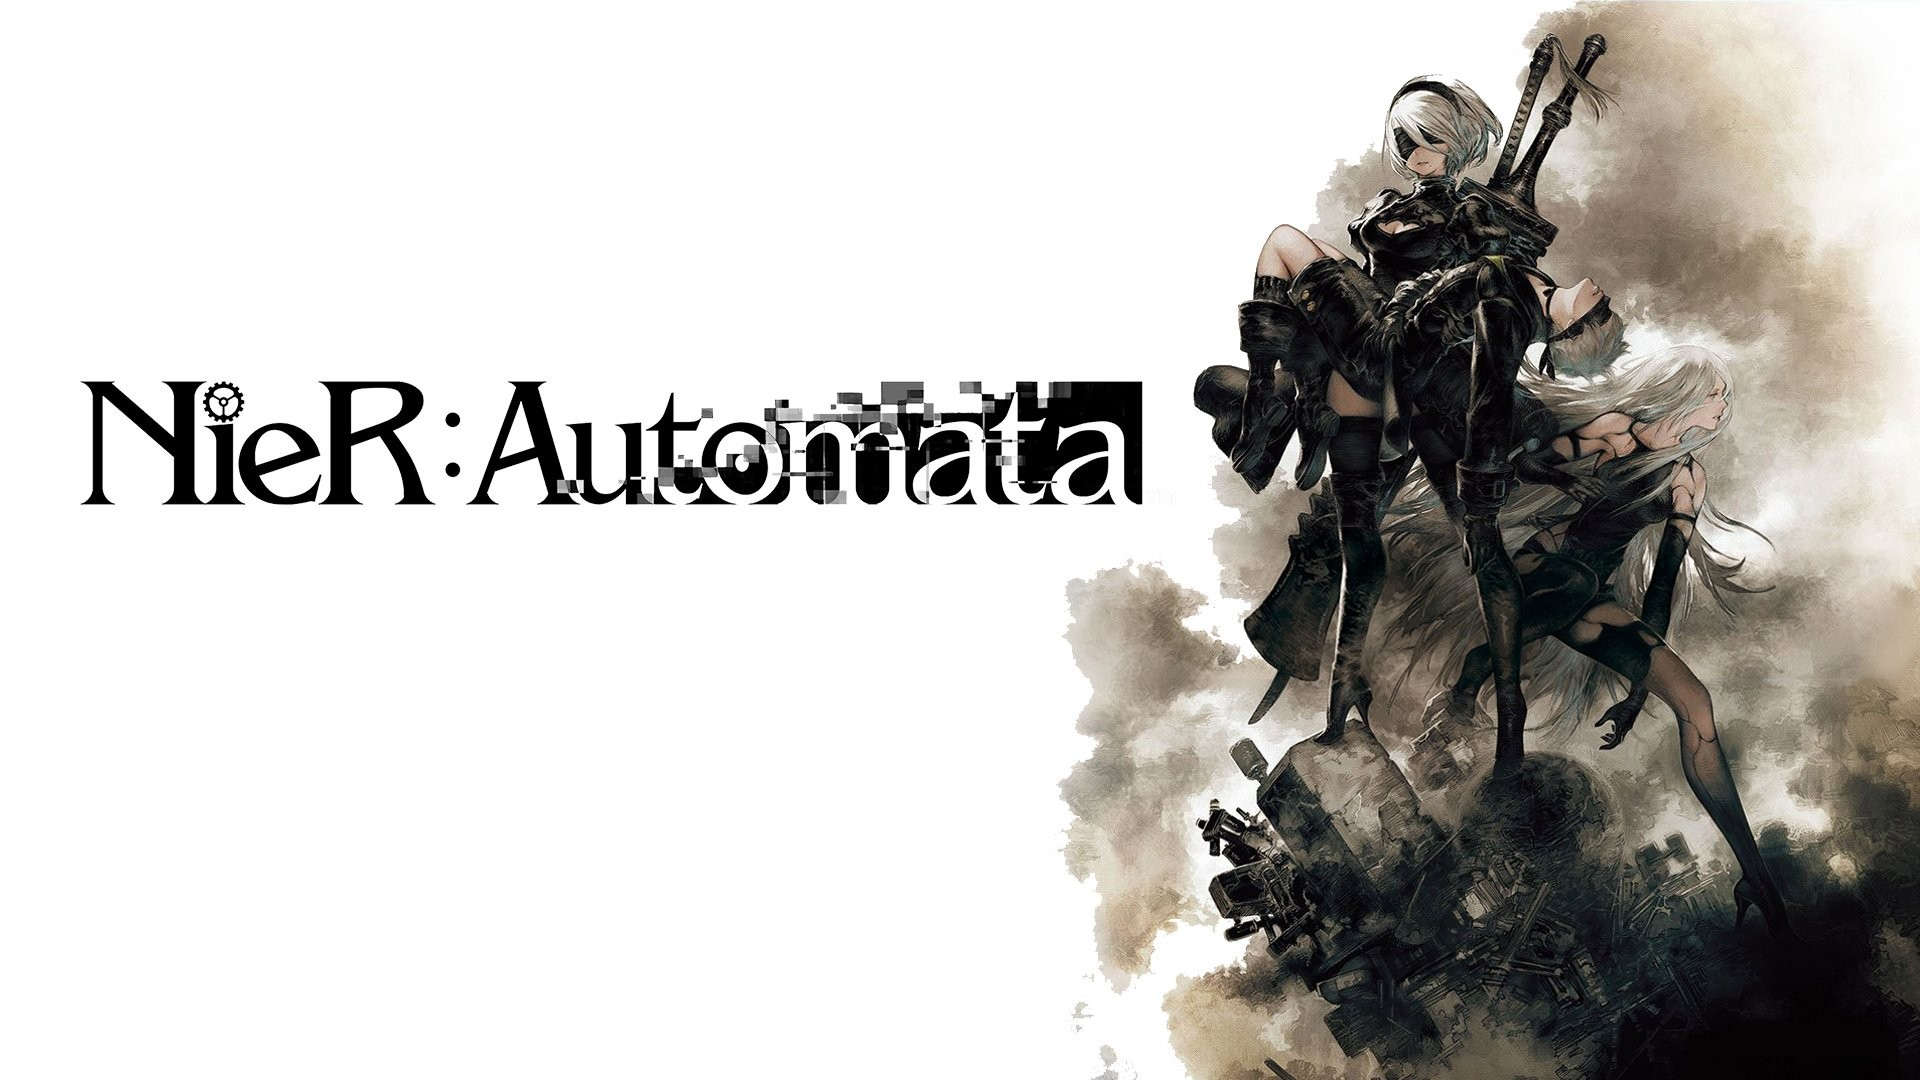 Hd wallpaper nier automata - 1920x1080 Nier Automata Wallpaper 1920x1080 For Iphone 5